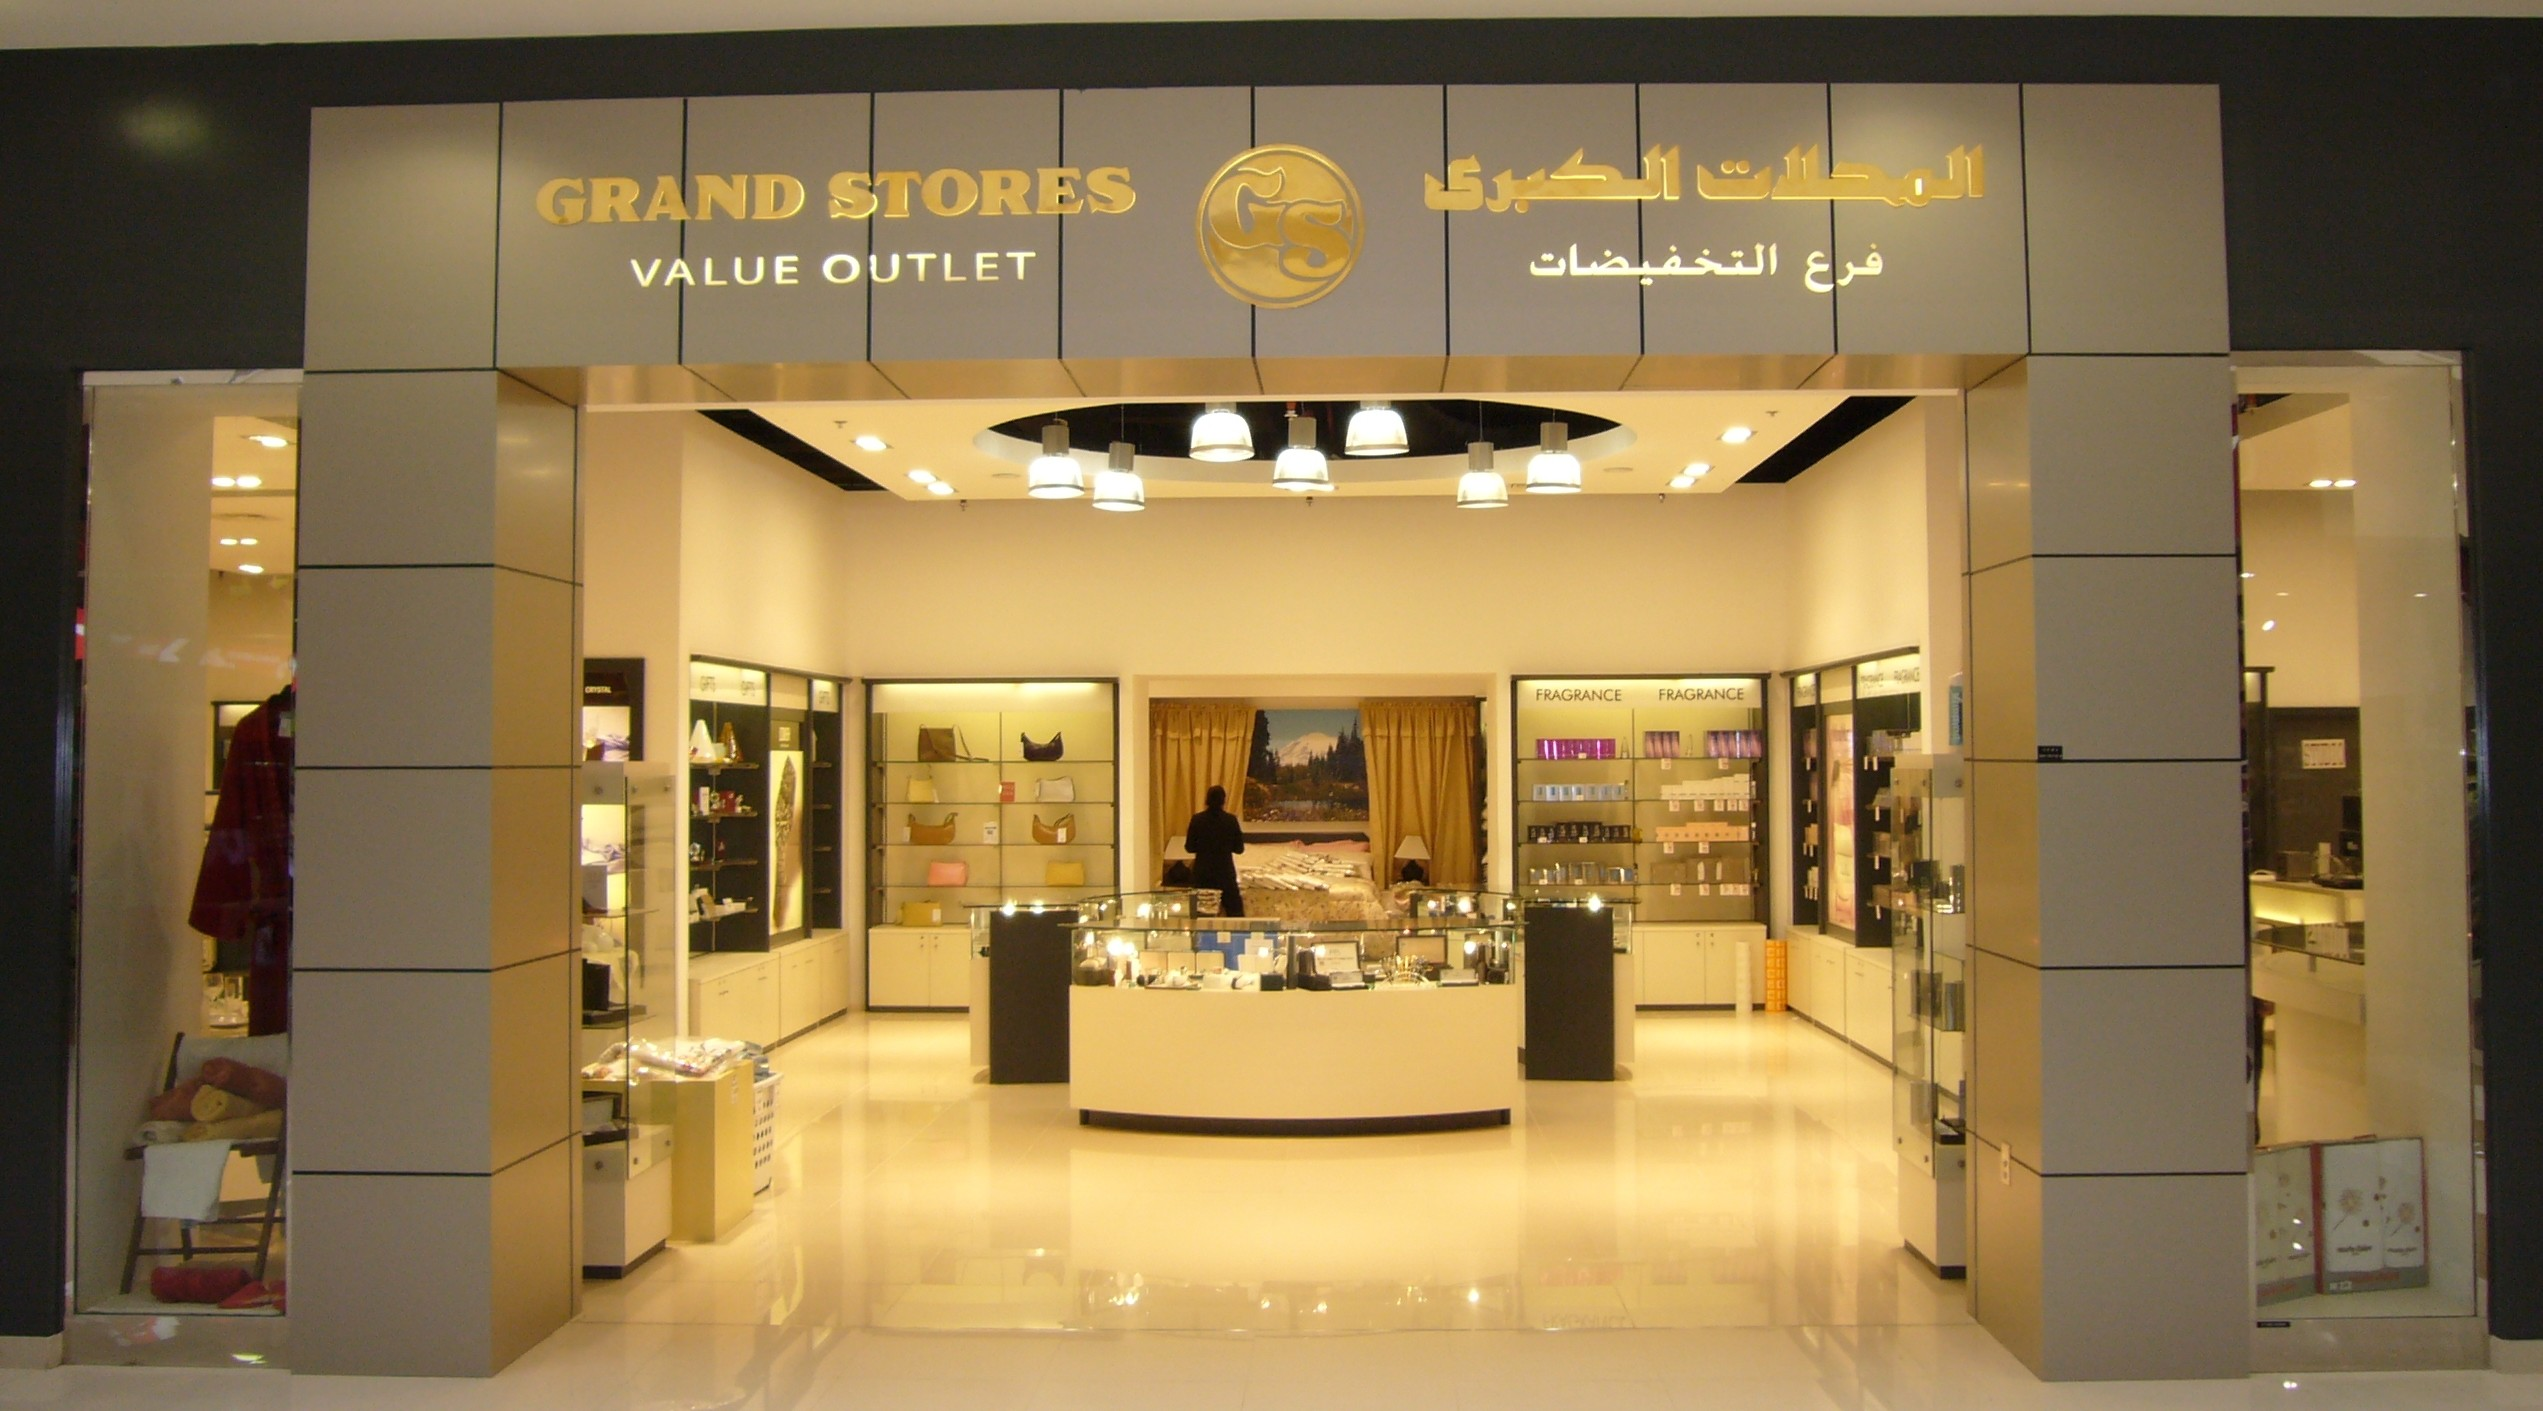 Grand Stores Outlet Dubai Shopping Guide